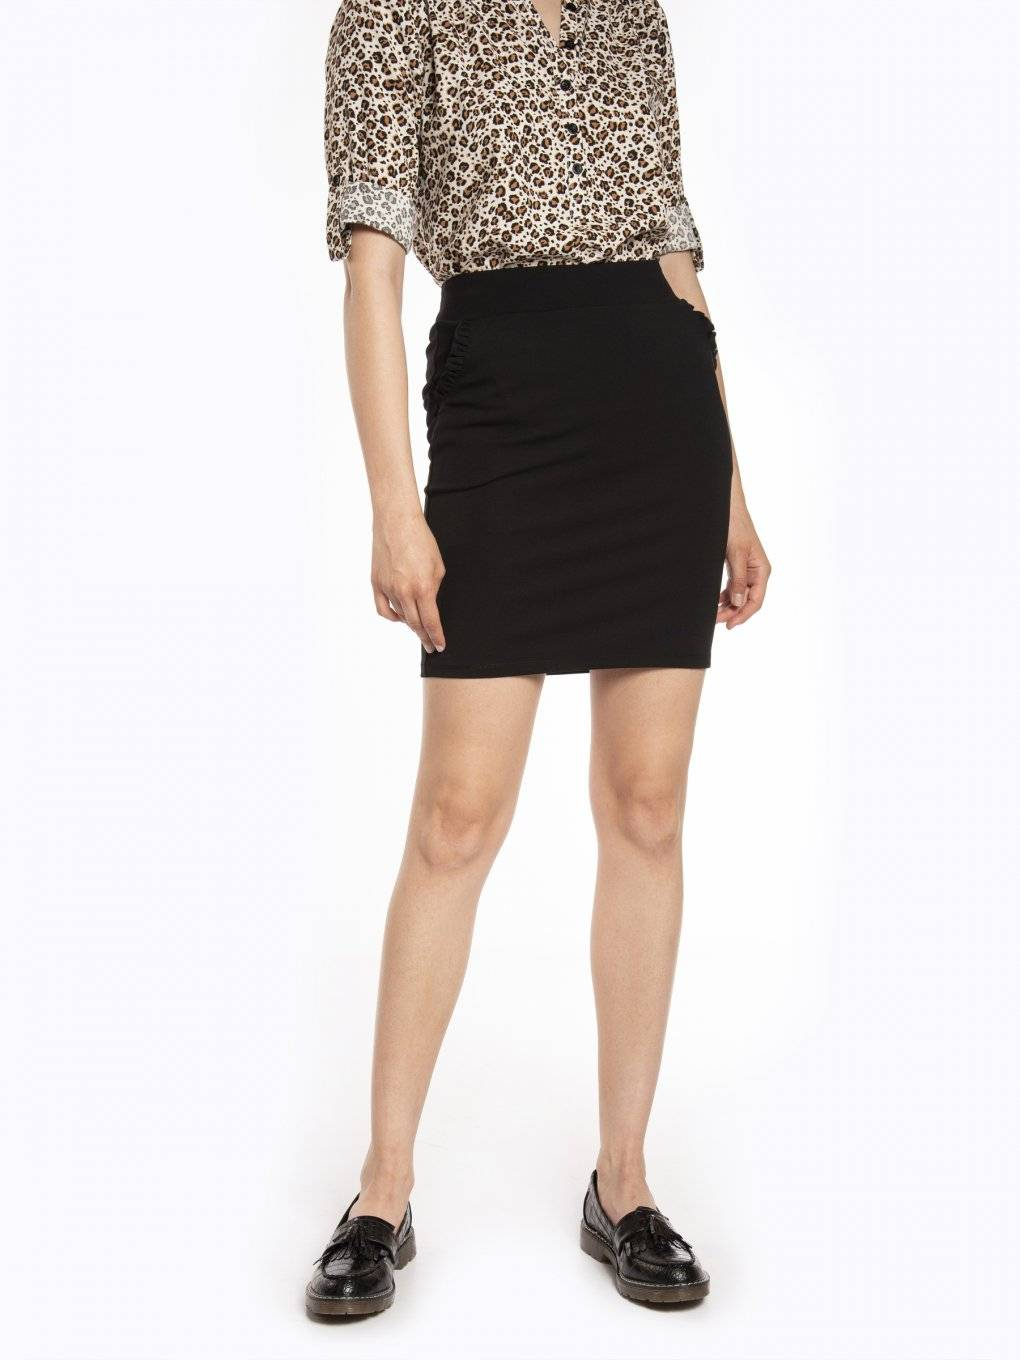 Bodycon mini skirt with ruffles on pockets